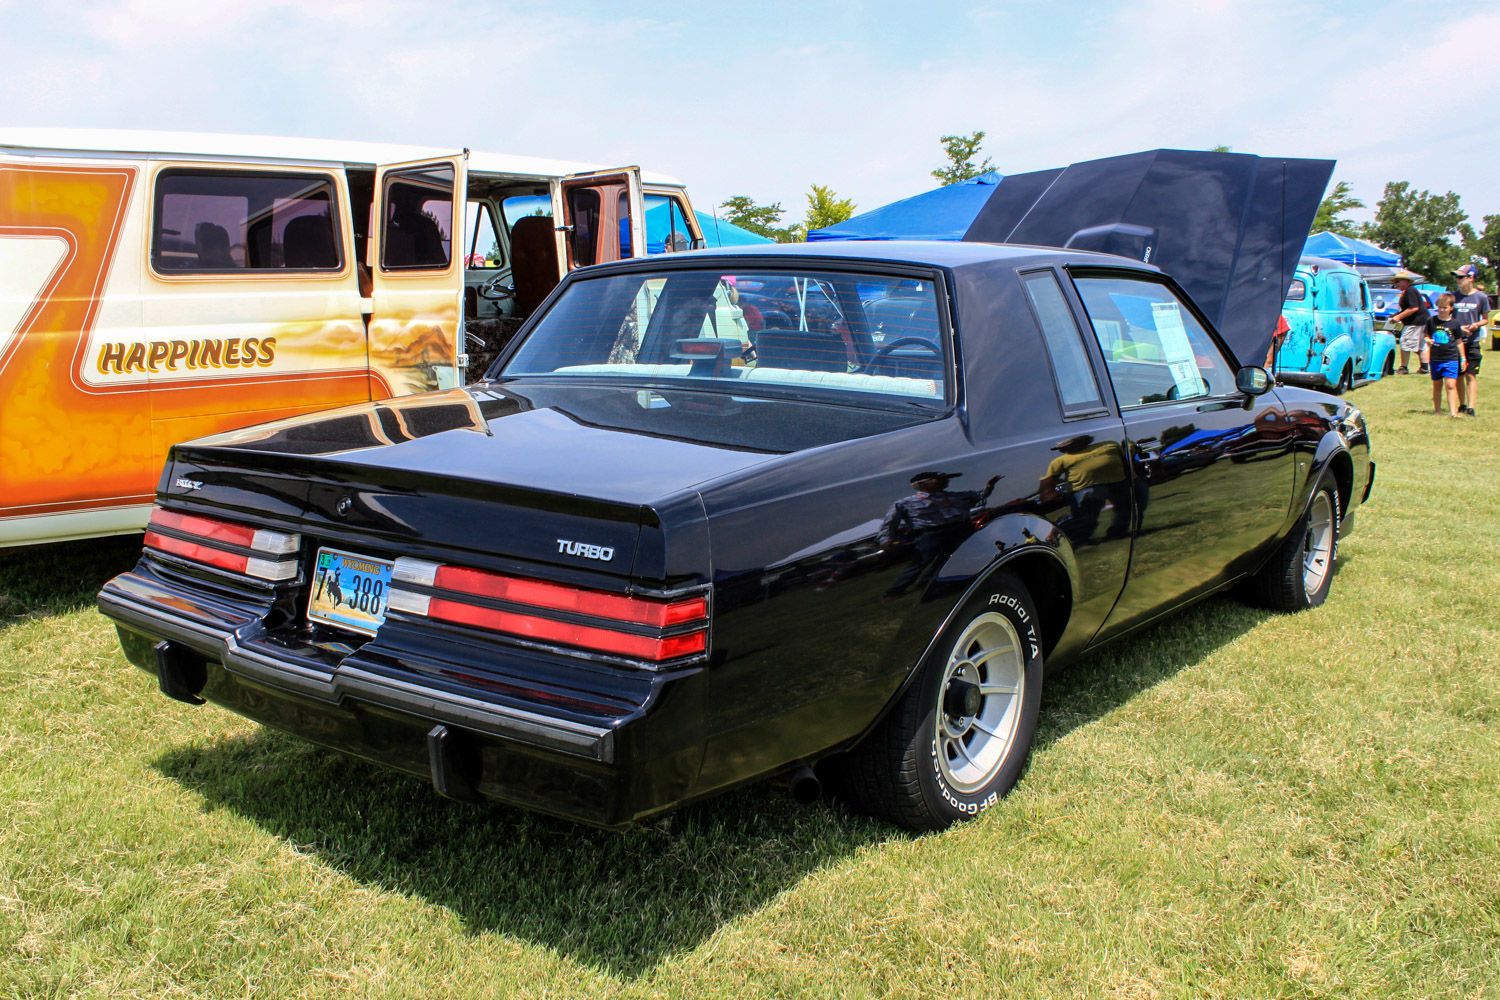 1987 Buick turbo-T rear 3/4 show